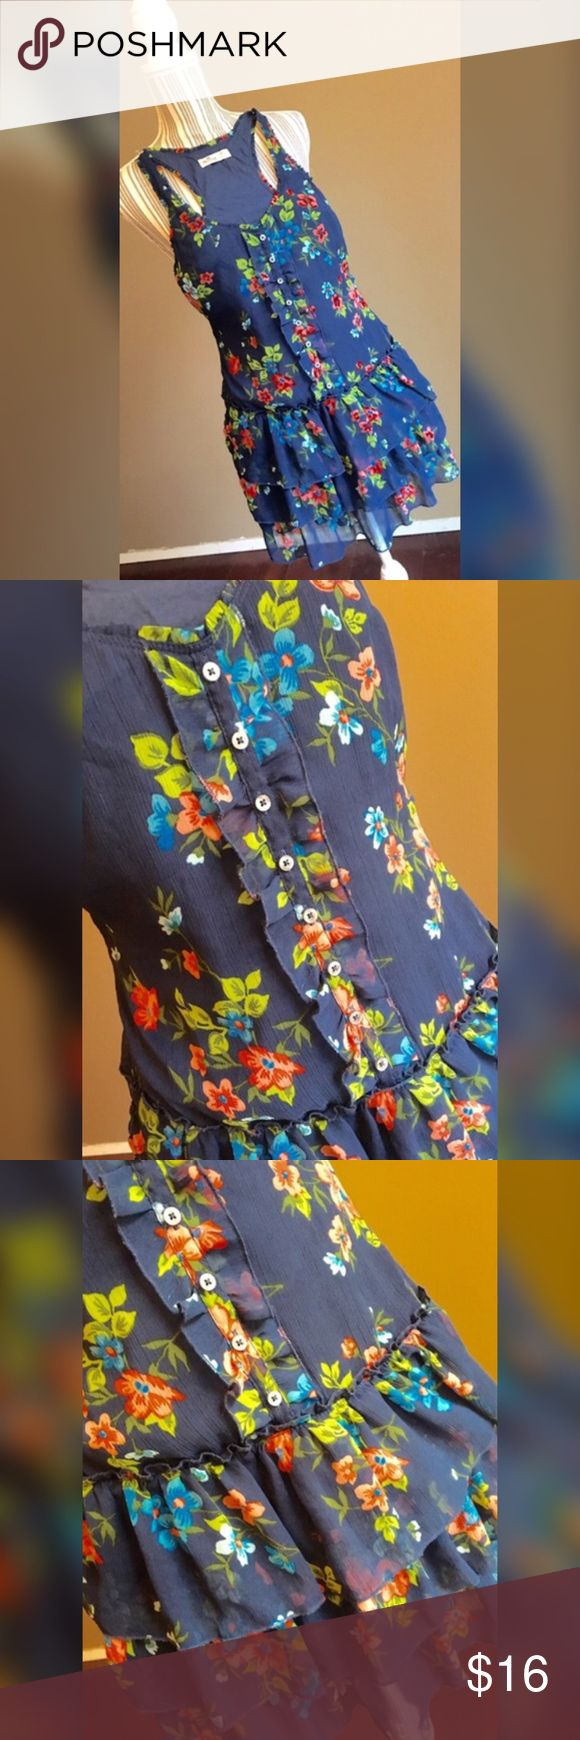 """Hollister Dress Floral Racer Back Dress w/Ruffles by Hollister. Size XS. It was too small for my mannequin! Bust 32"""". Waist 30"""". Shoulder to hem length 31"""". Hollister Dresses"""